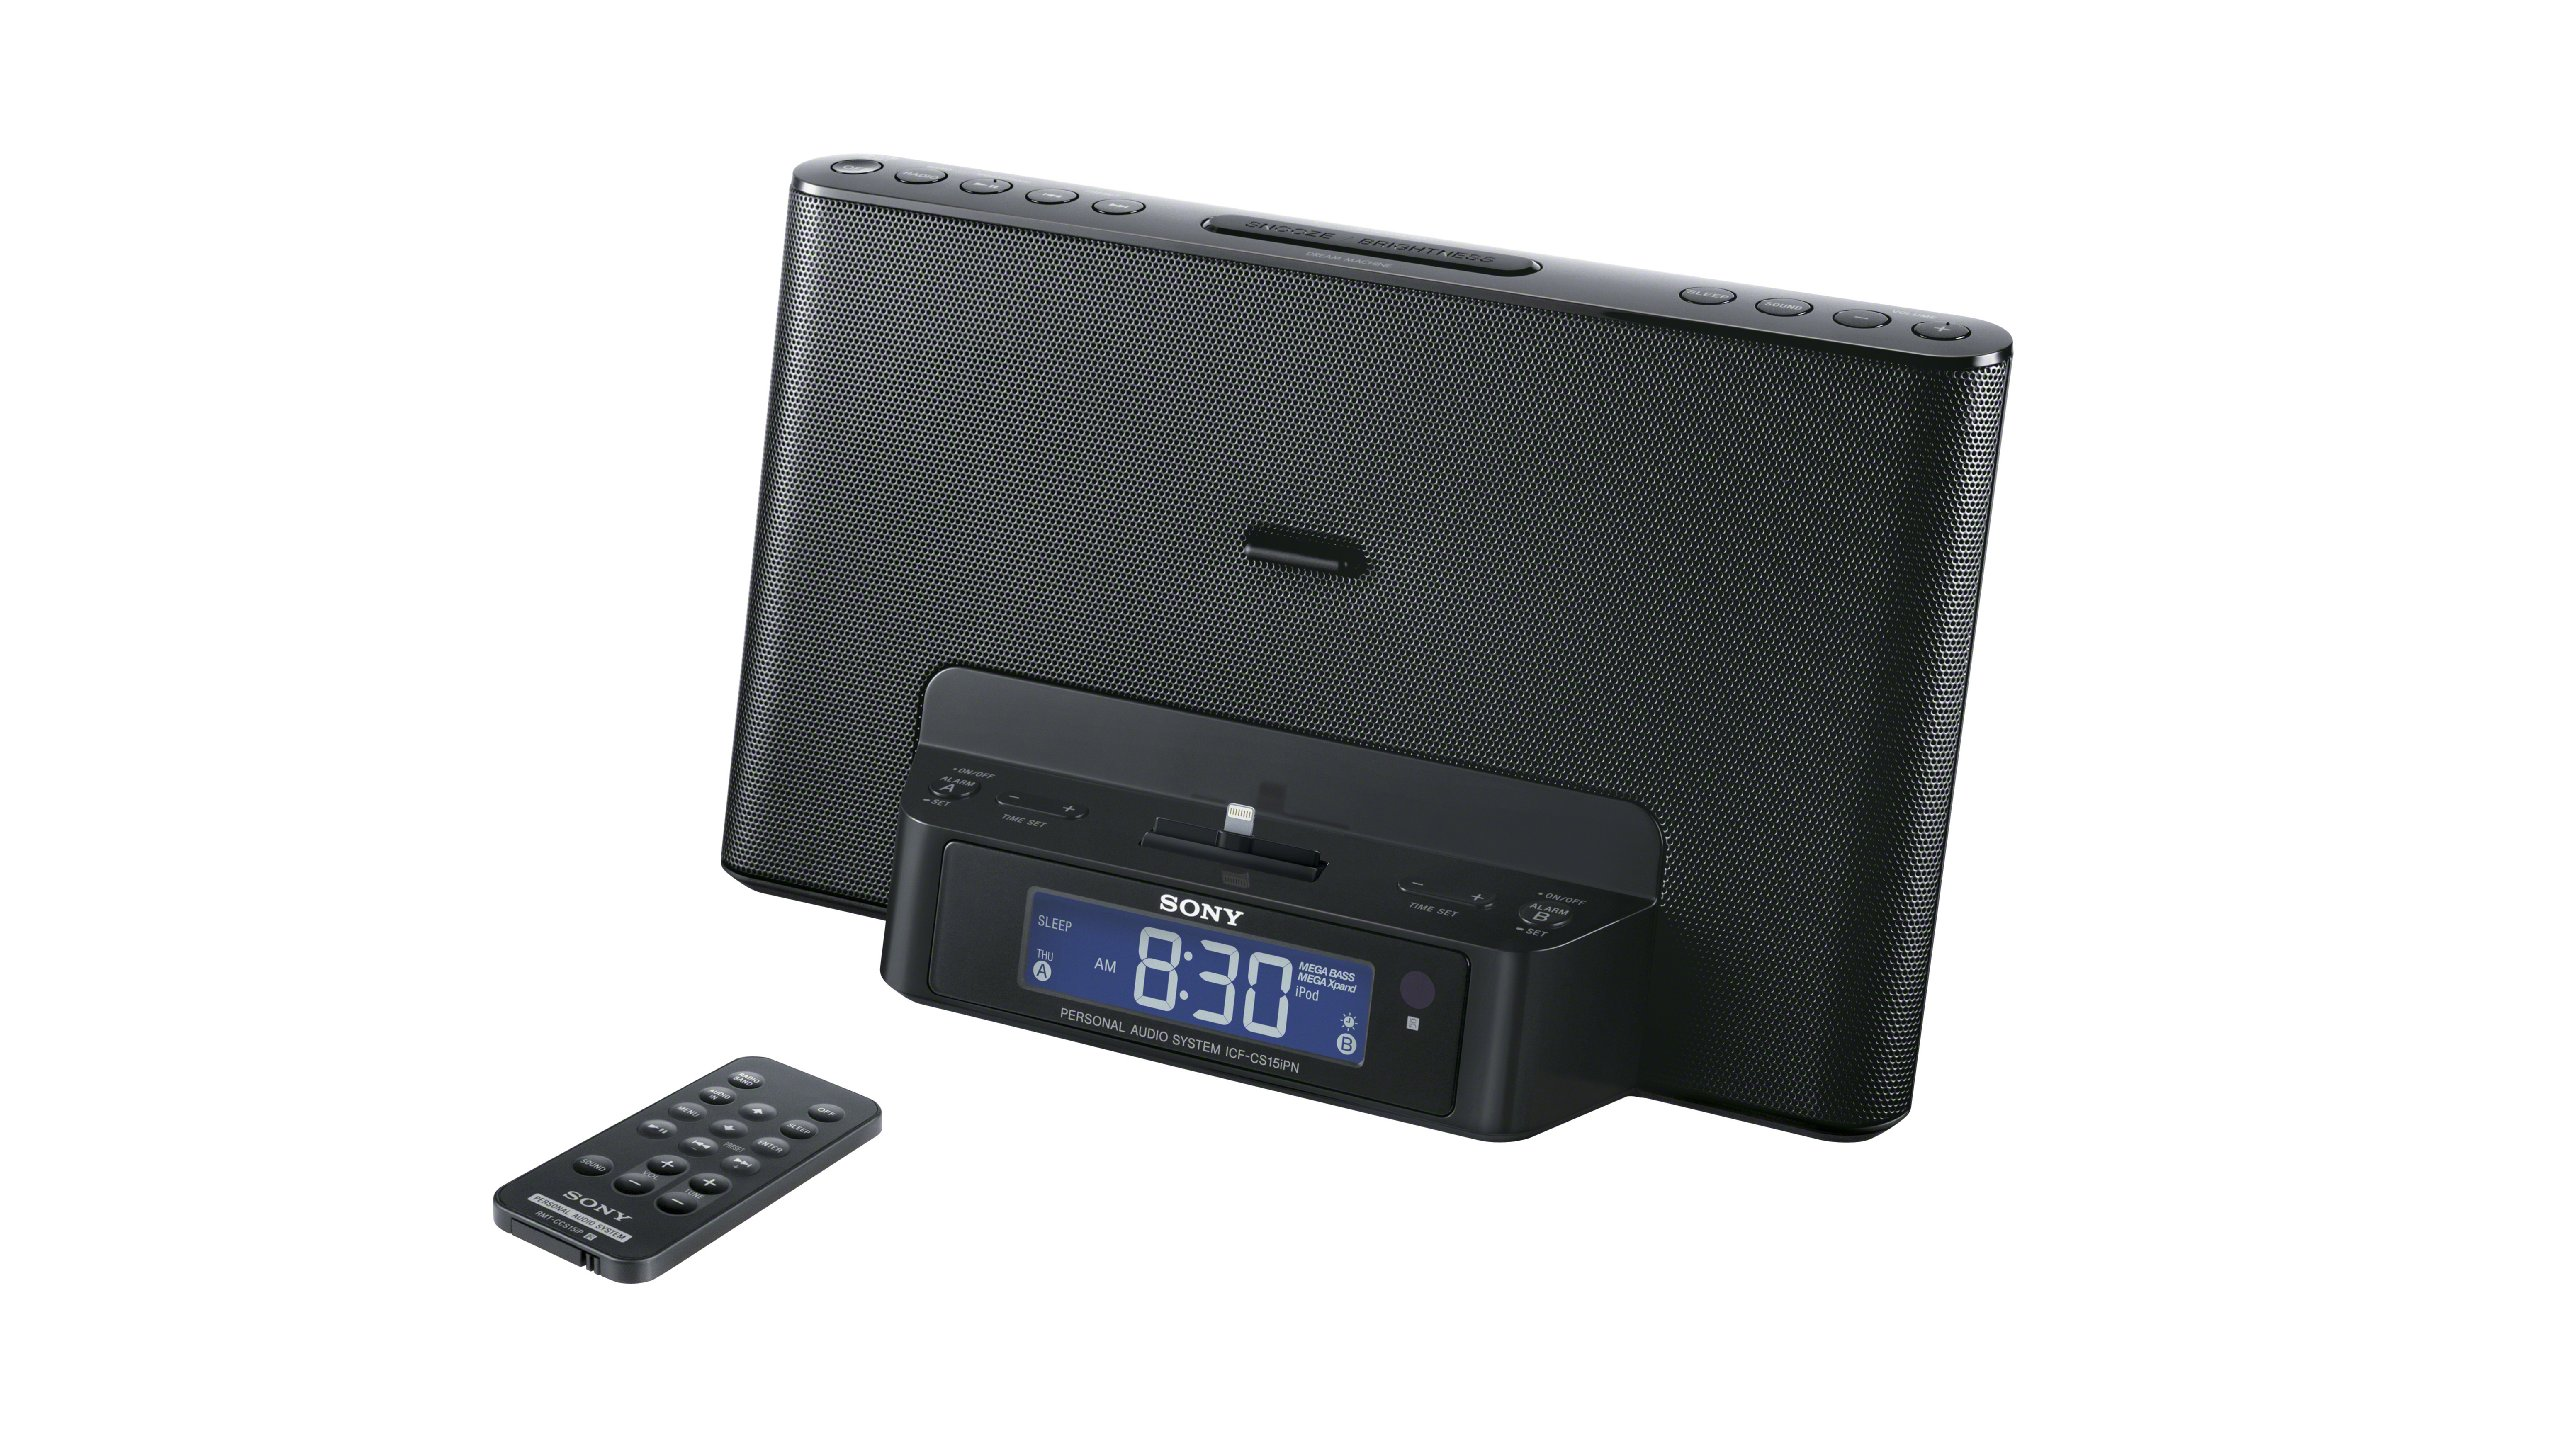 Sony ICFCS15IPN Lightning iPhone/iPod Clock Radio Speaker Dock (Black) (Discontinued by Manufacturer) by Sony